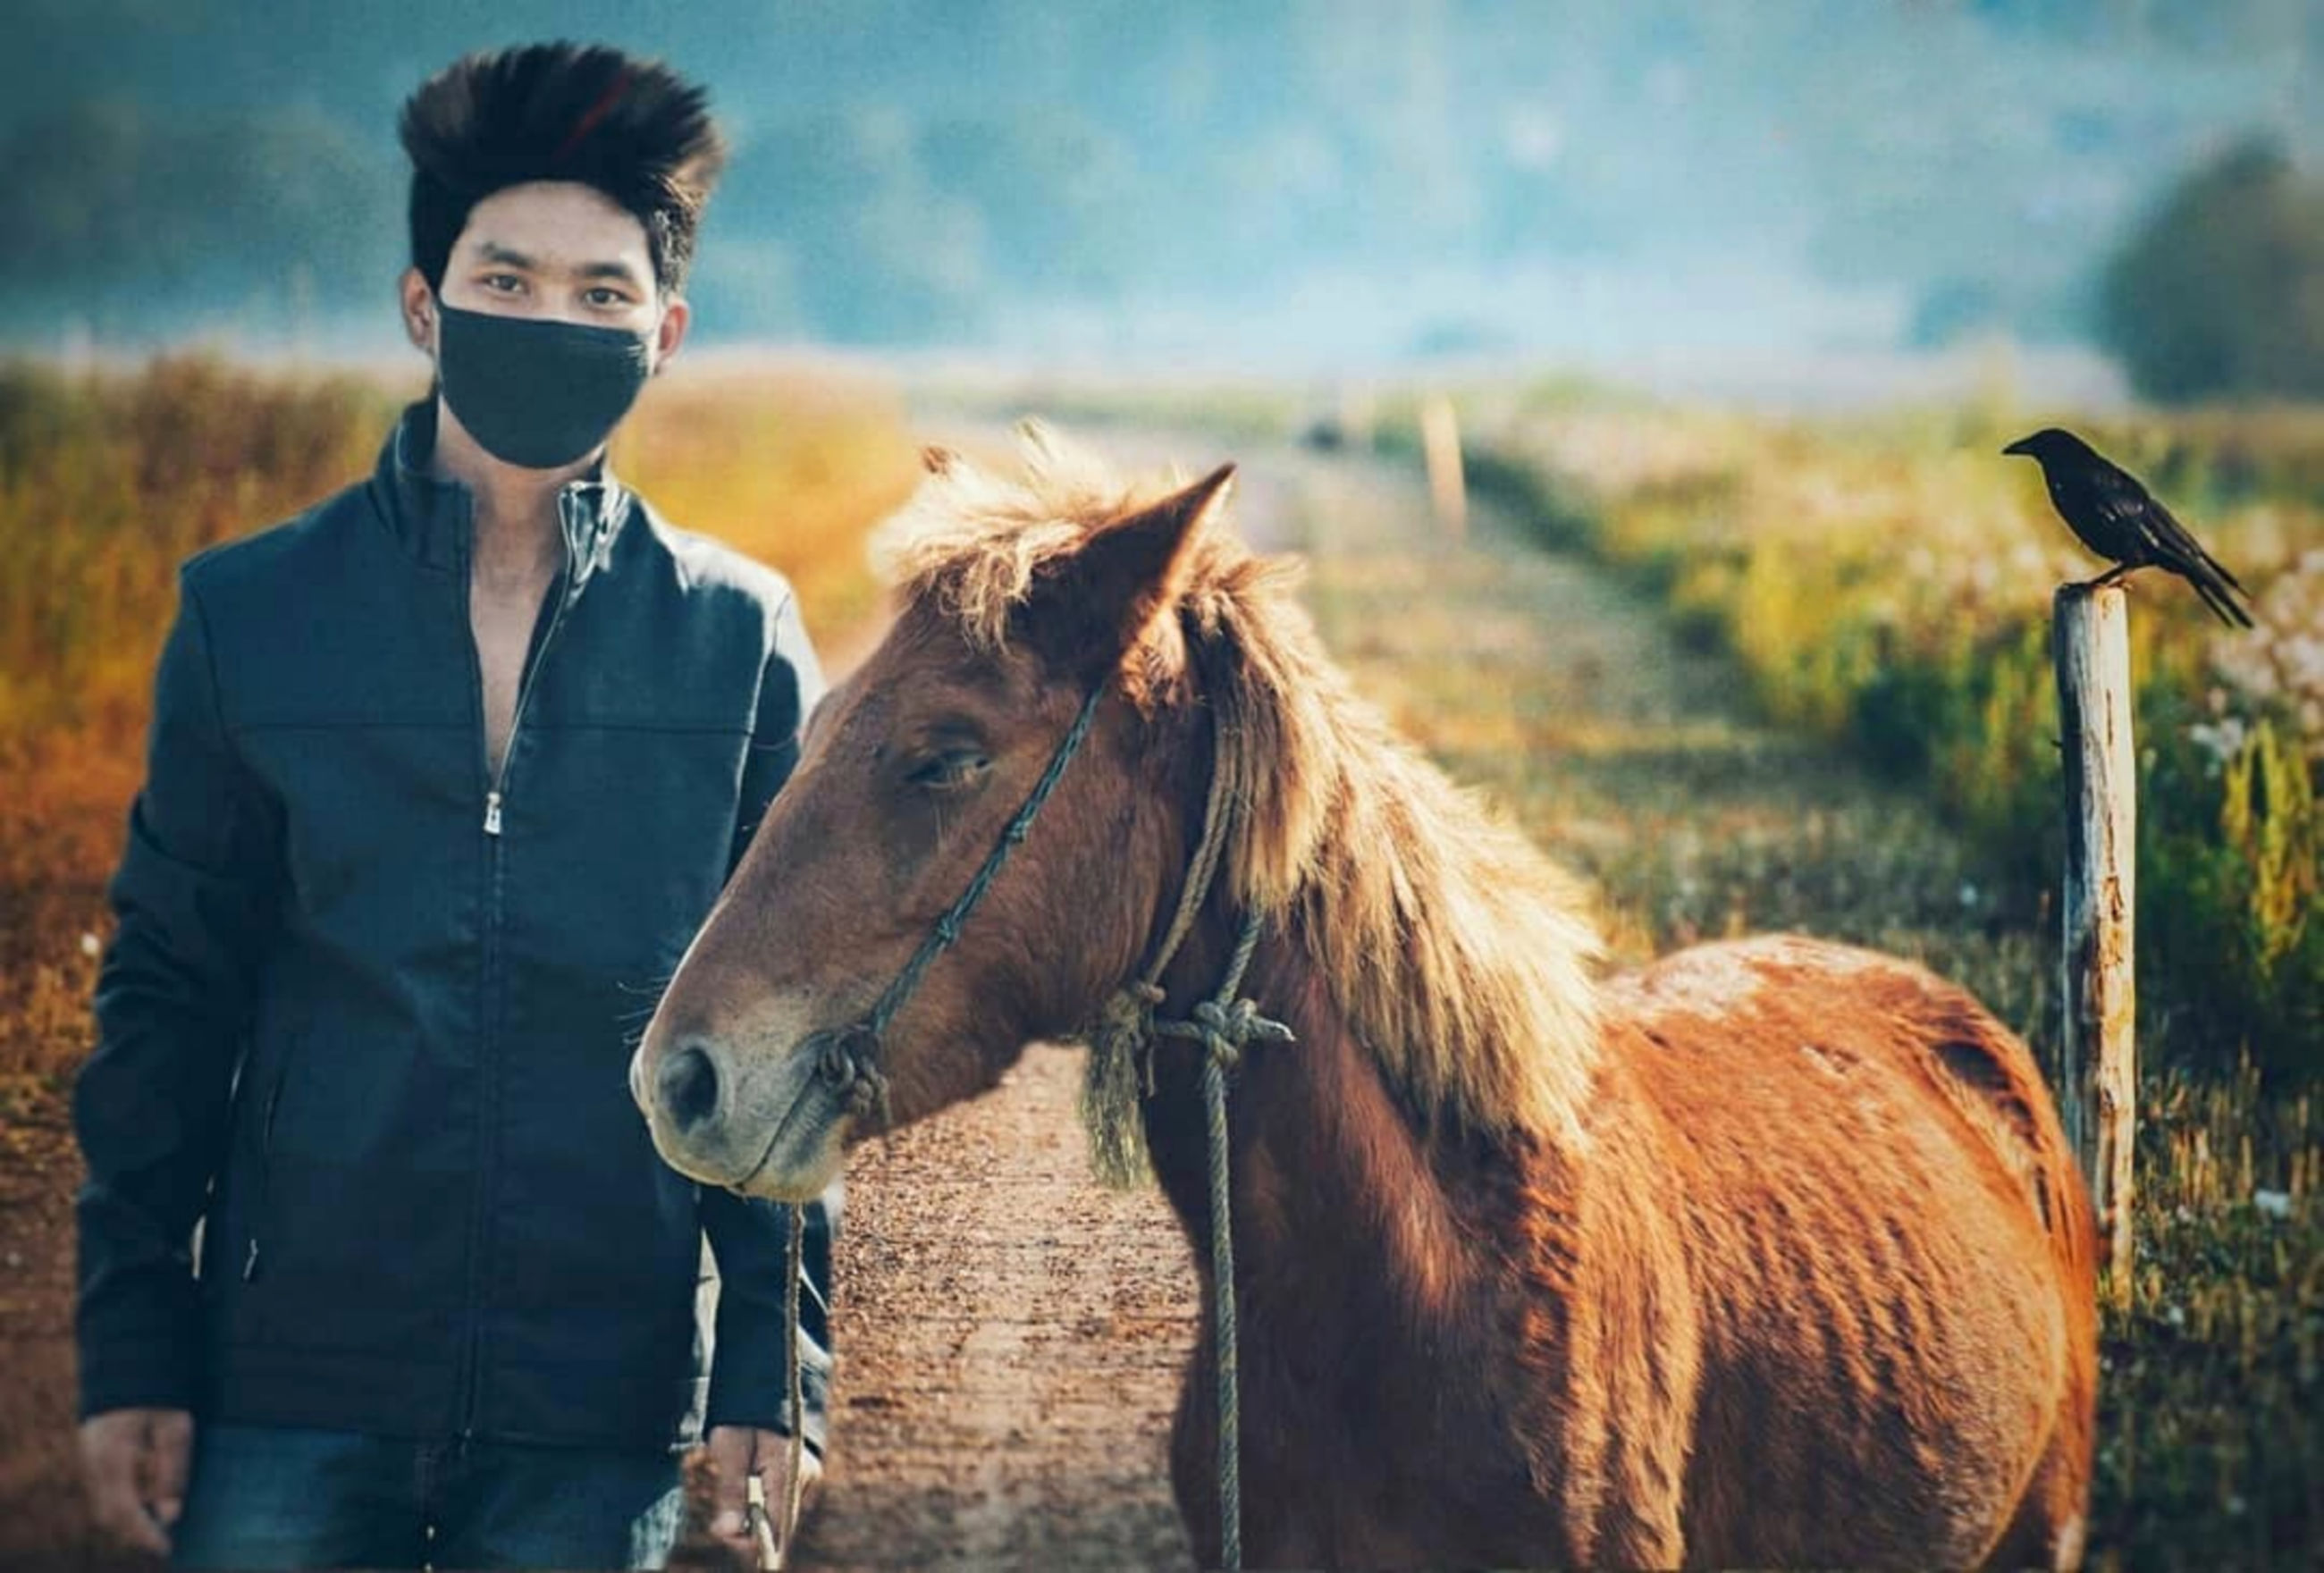 Portrait of man wearing pollution mask while standing by horse on dirt road